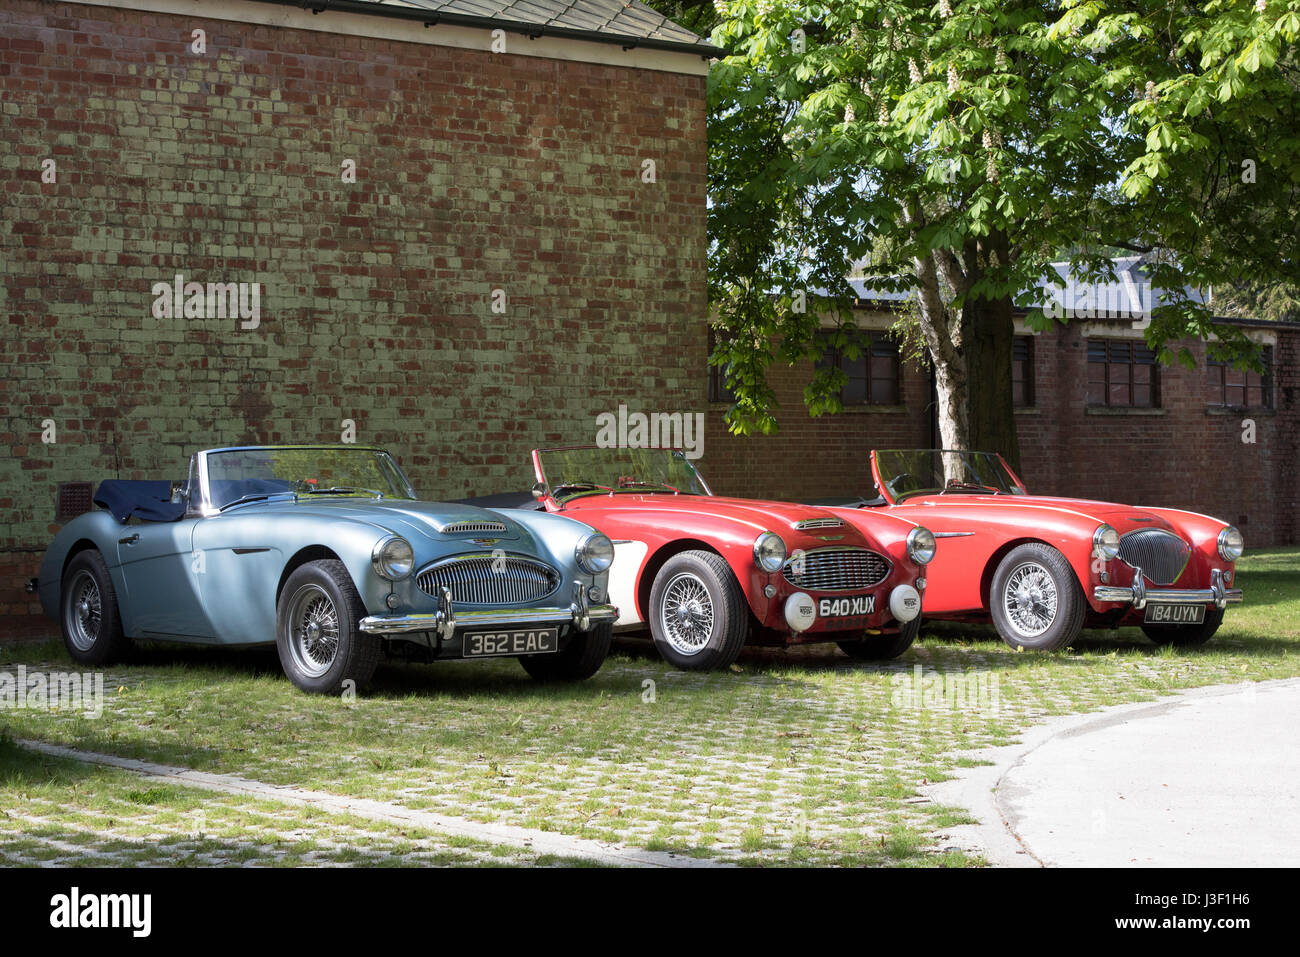 Vintage austin healey cars at Bicester Heritage Centre. Oxfordshire ...